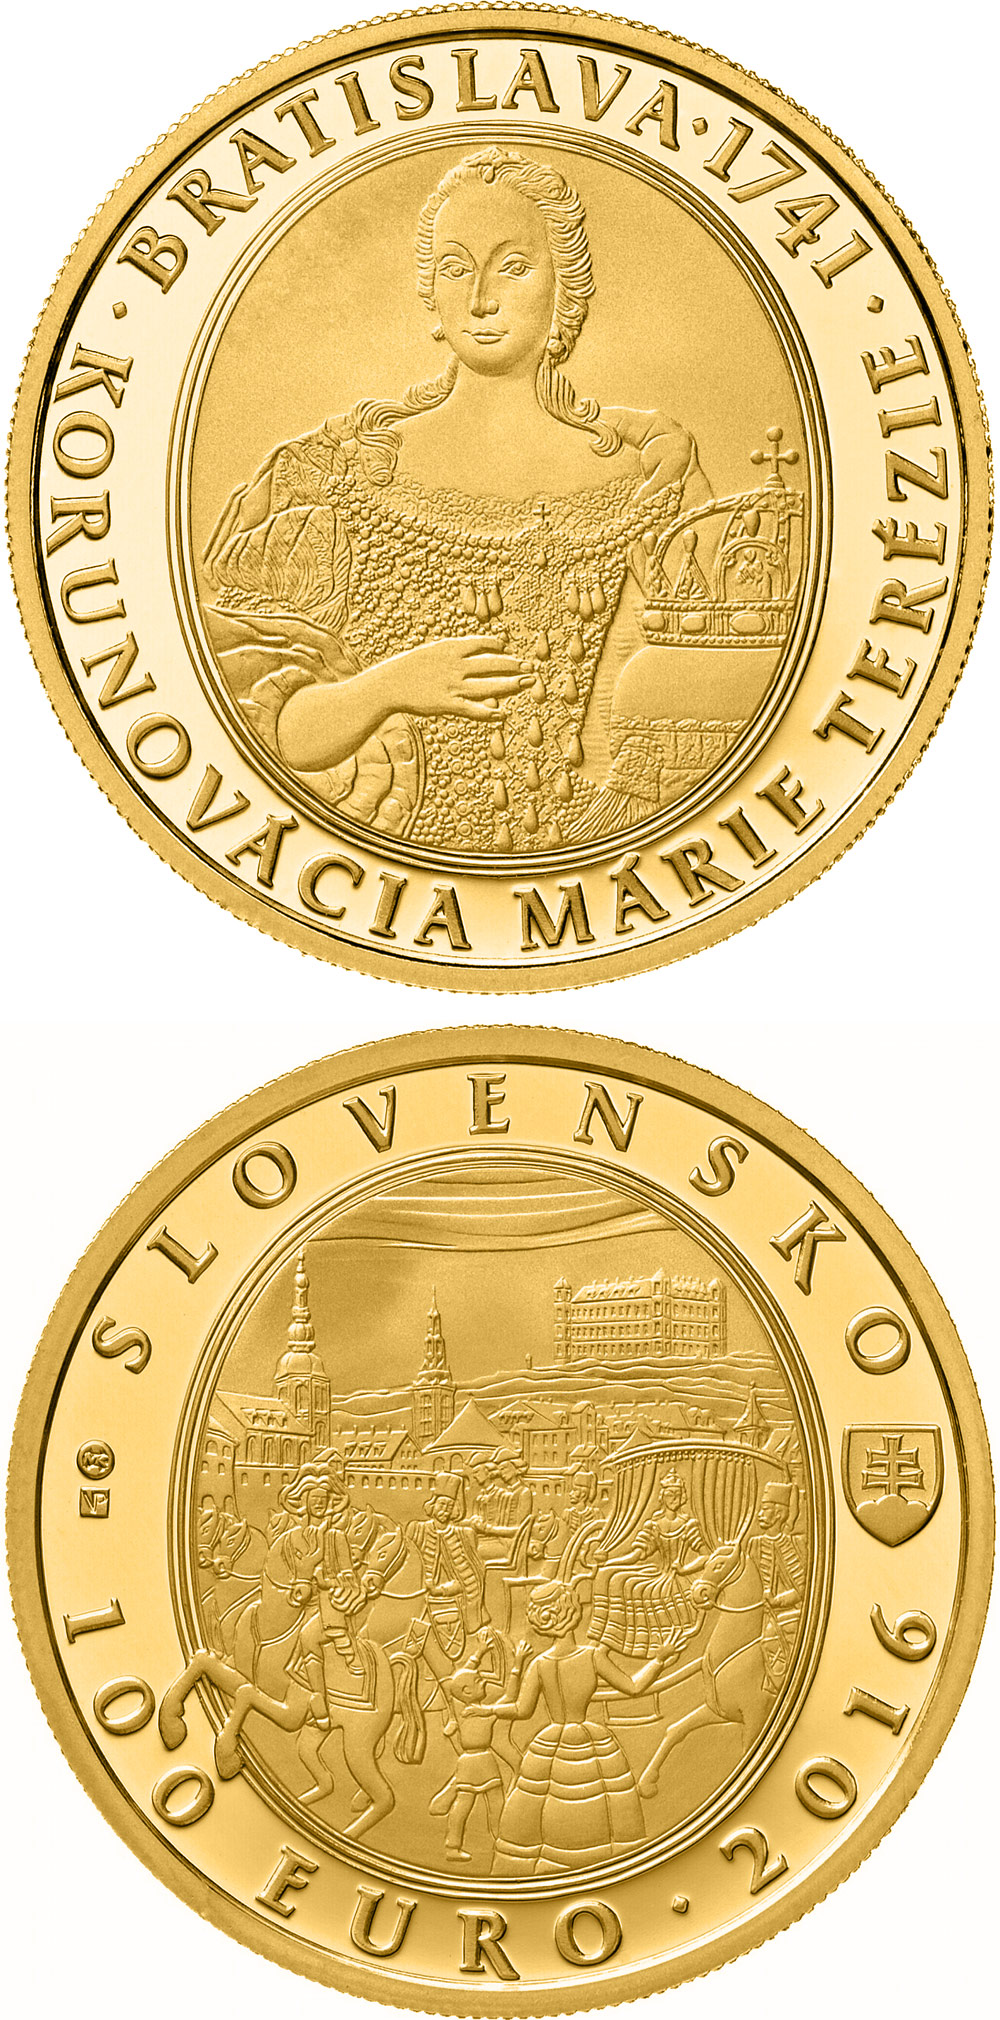 100 euro Bratislava Coronations - 275th anniversary of the coronation of Maria Theresa - 2016 - Series: Gold 100 euro coins - Slovakia